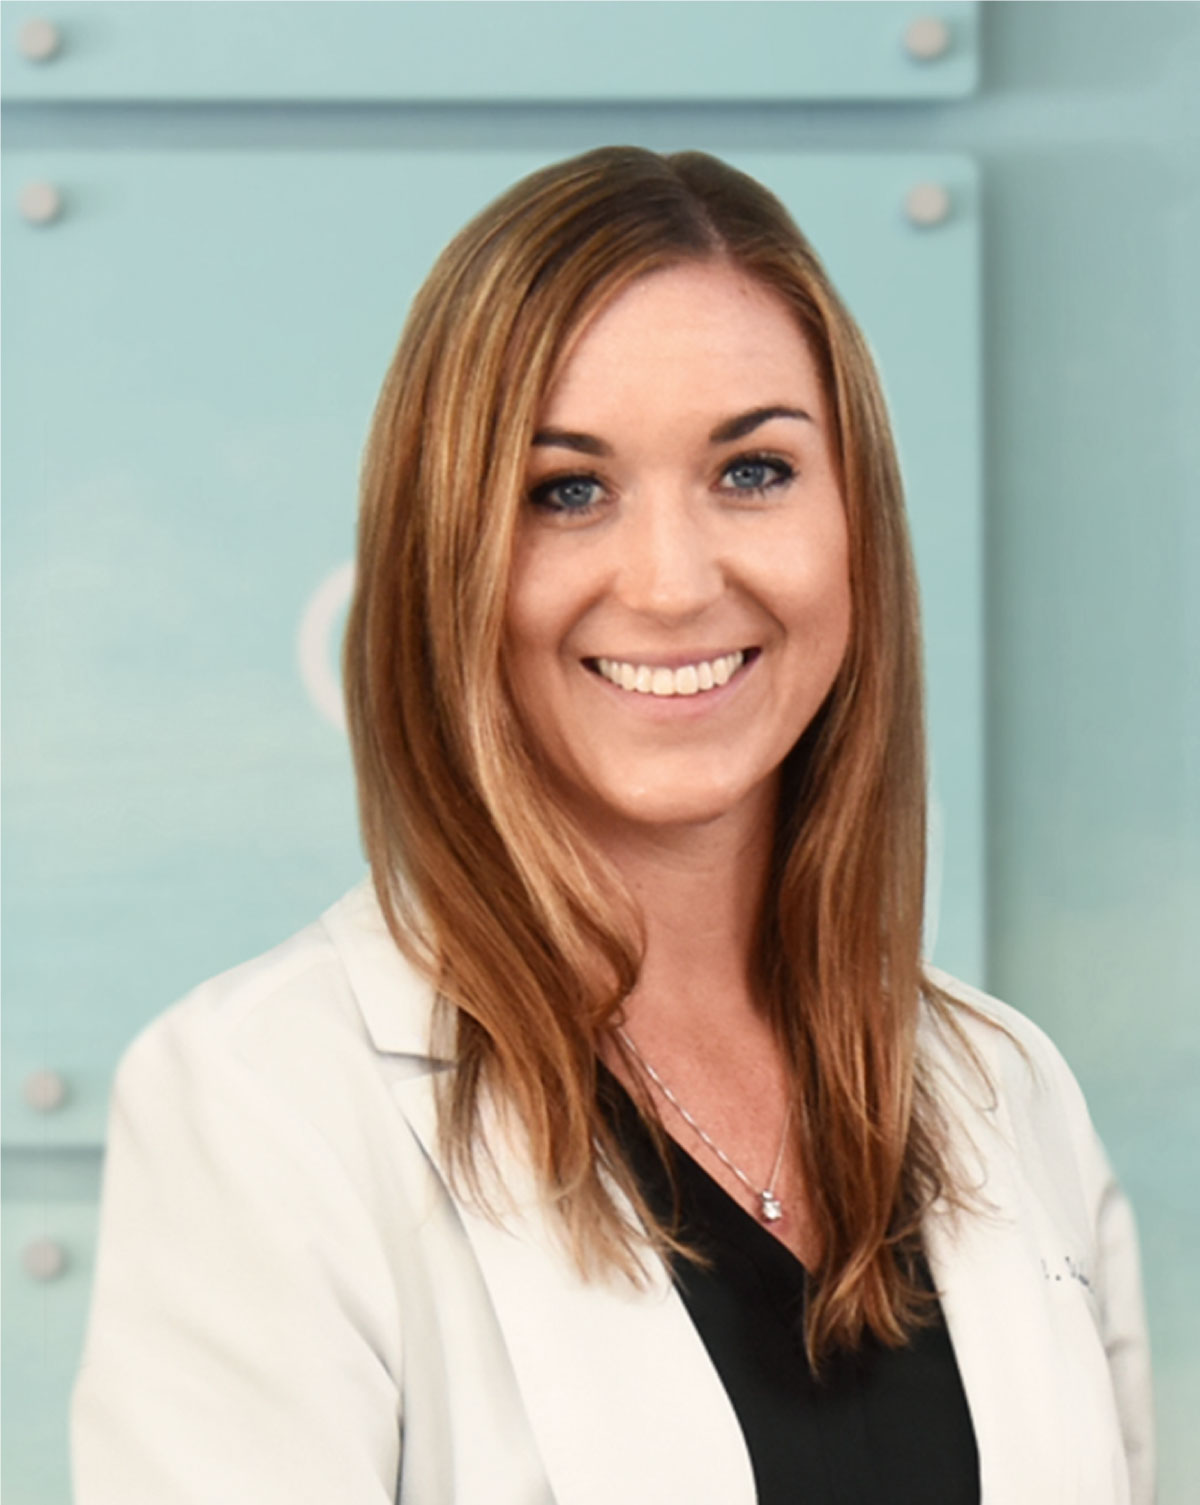 One of Our Optometrist On Our Team, Dr. Kelly Fisher